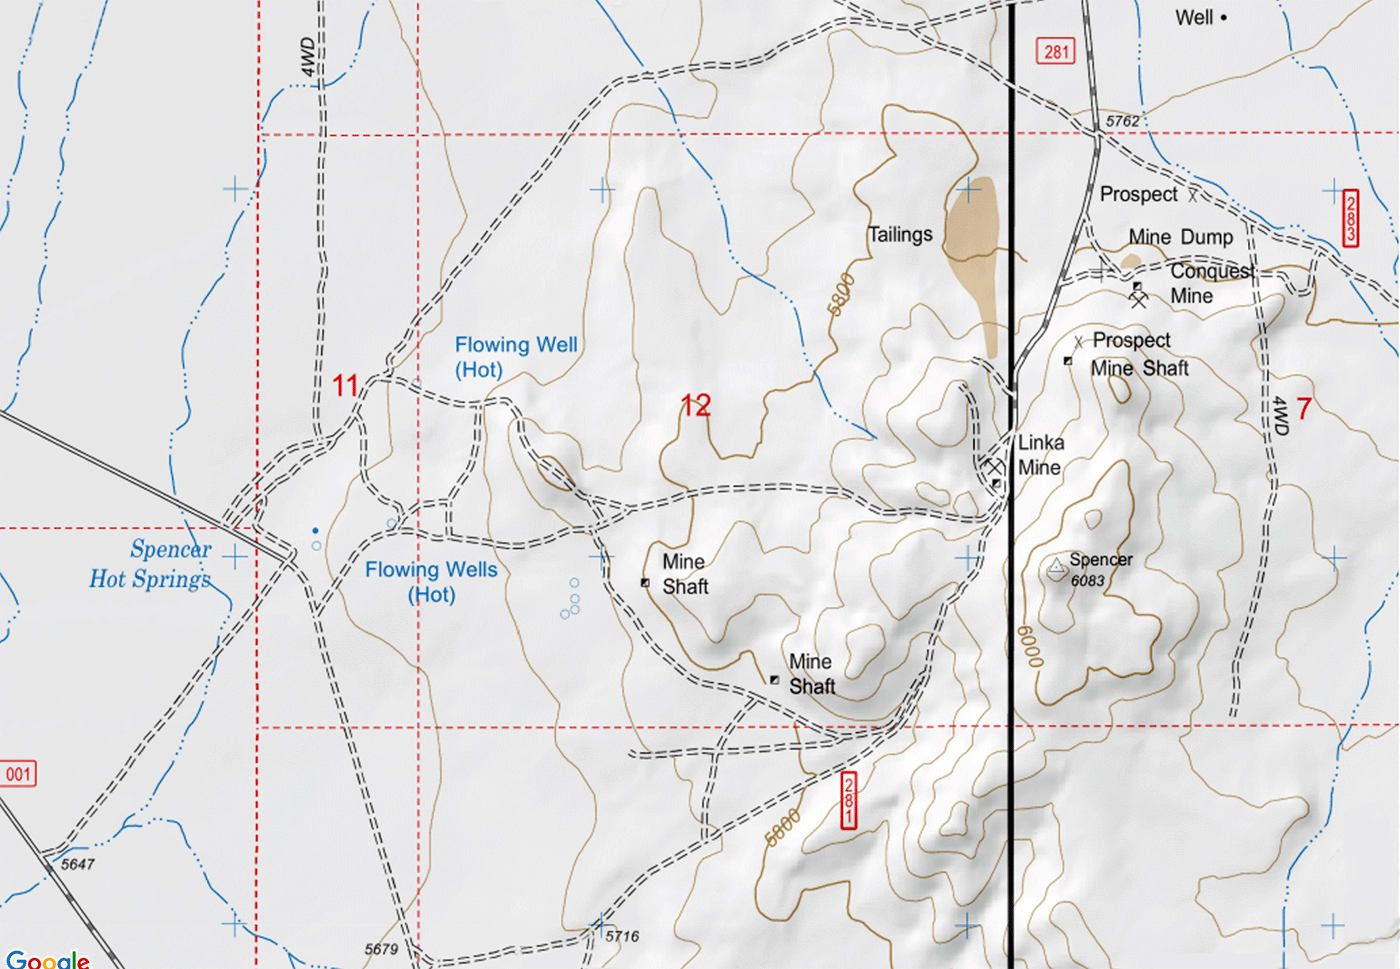 Spencer Hot Springs and Linka Mine Topo Map